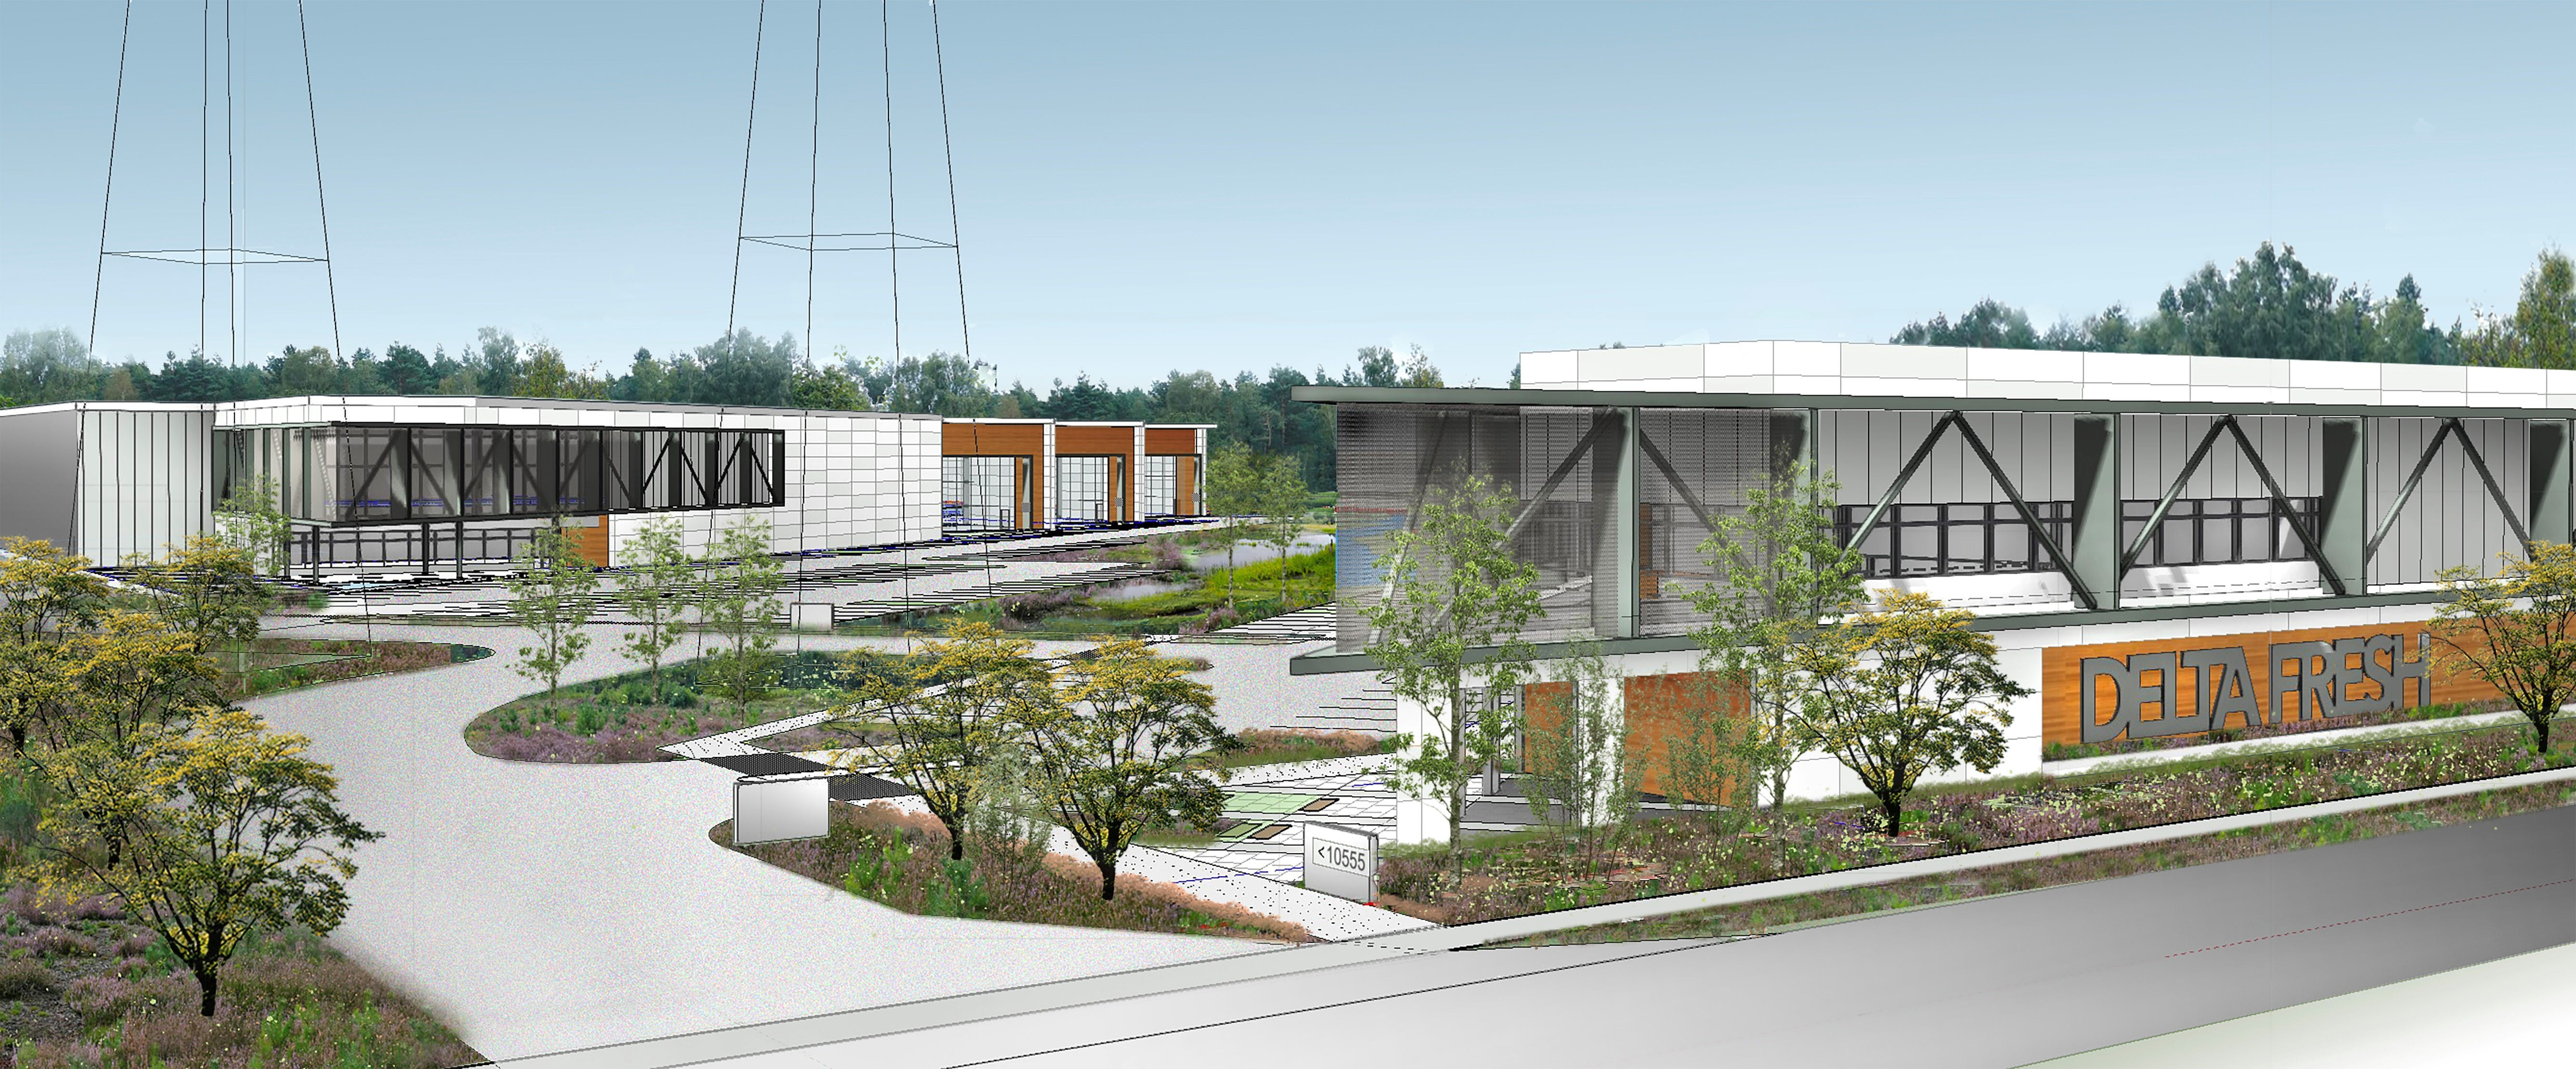 Rendering from 64 Avenue (South)